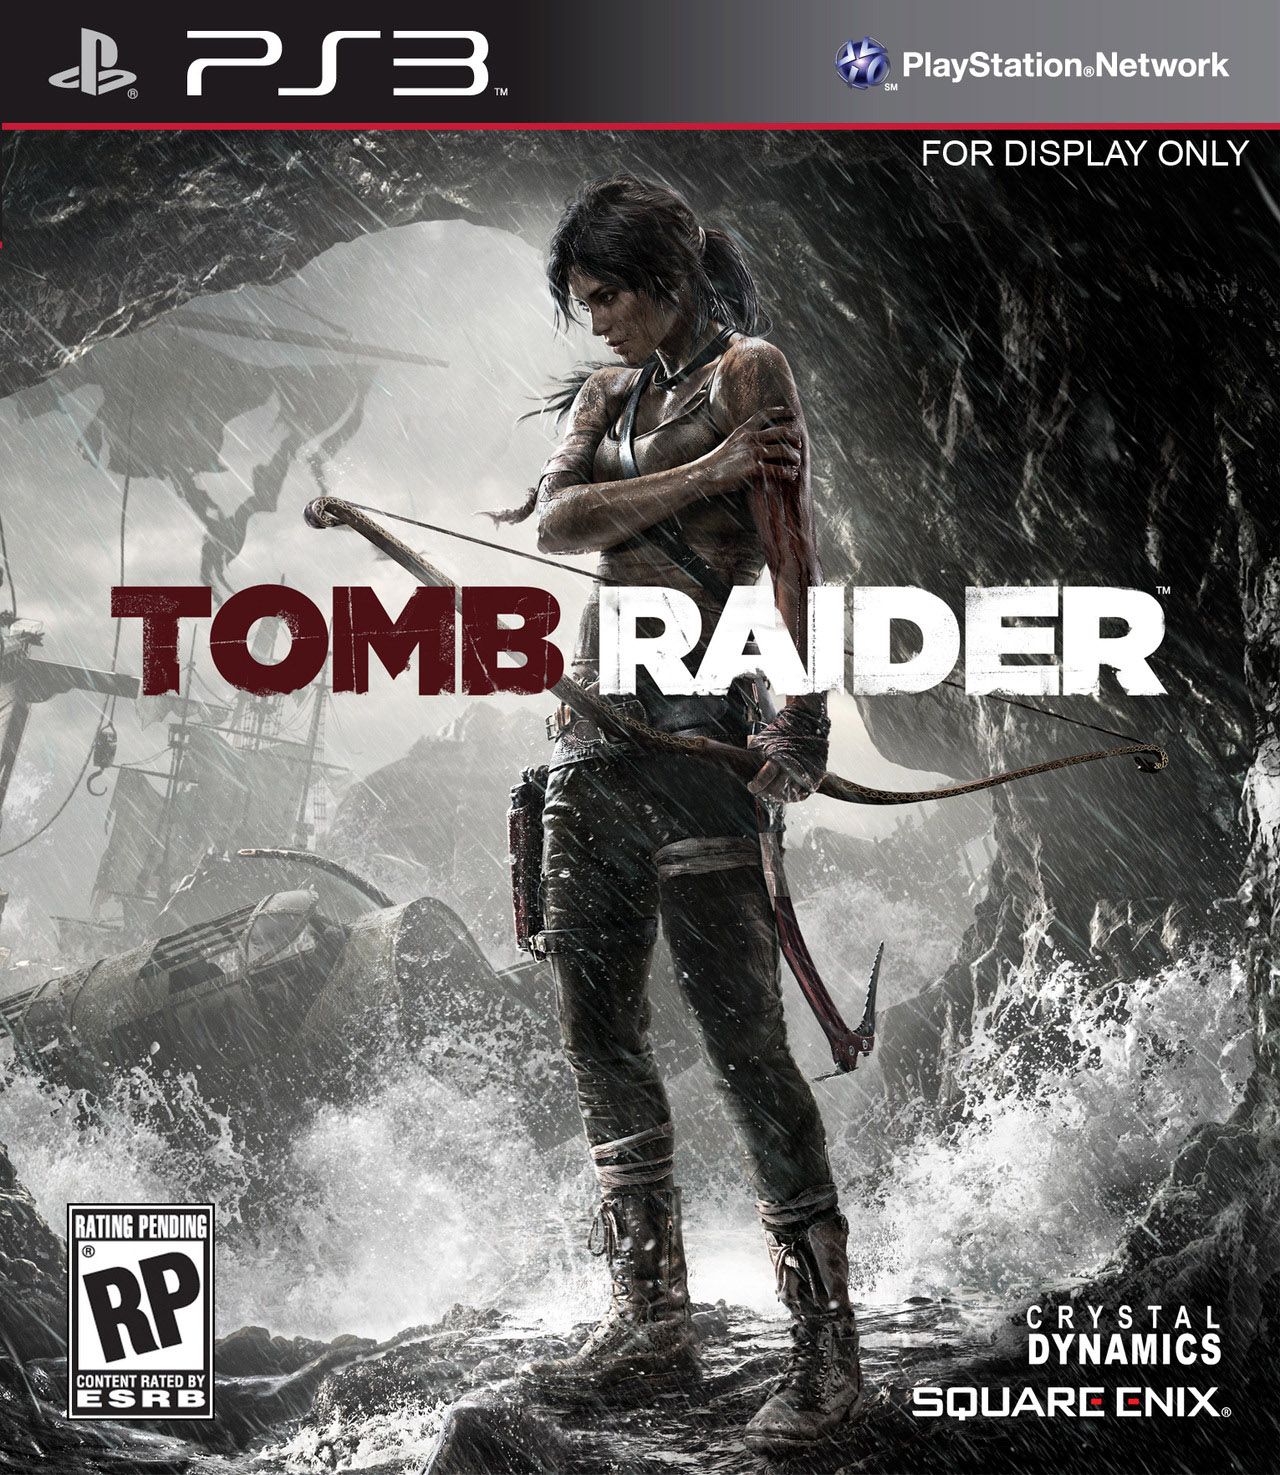 Tomb raider 2013 overview and walkthrough